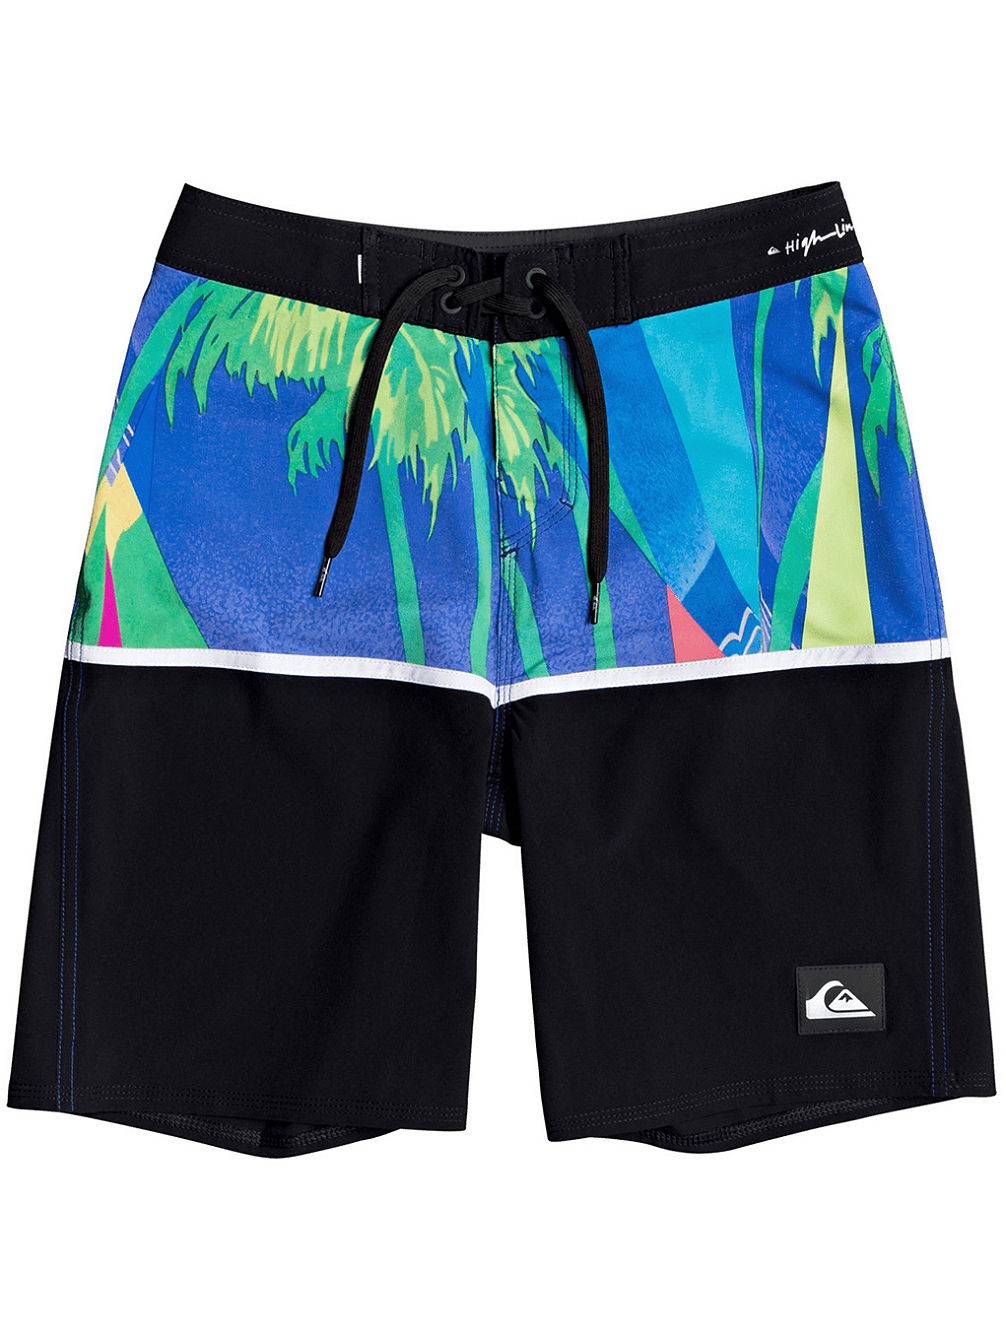 Highline Division 18 Boardshorts